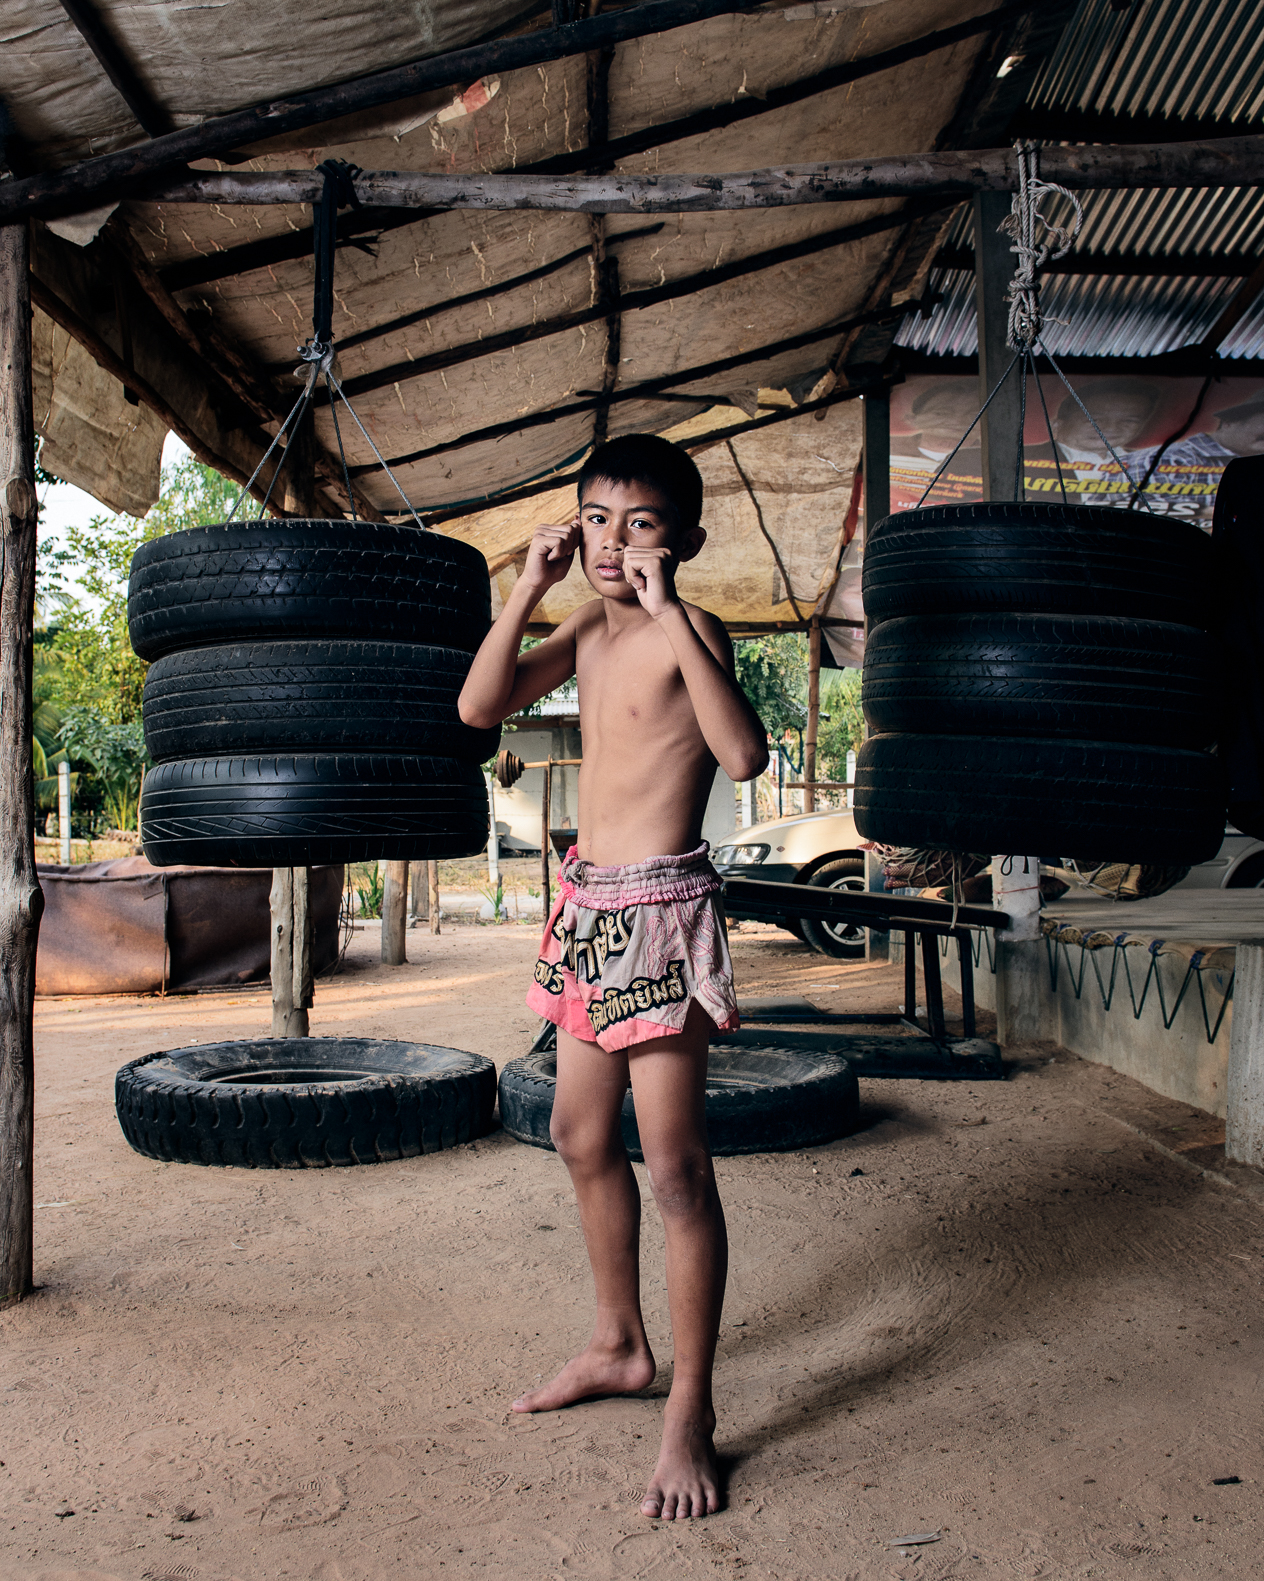 Robert-Paul-Cohen-Photography-Dor-Pewlawpakdee-Little-Tigers-Muay-Thai-3